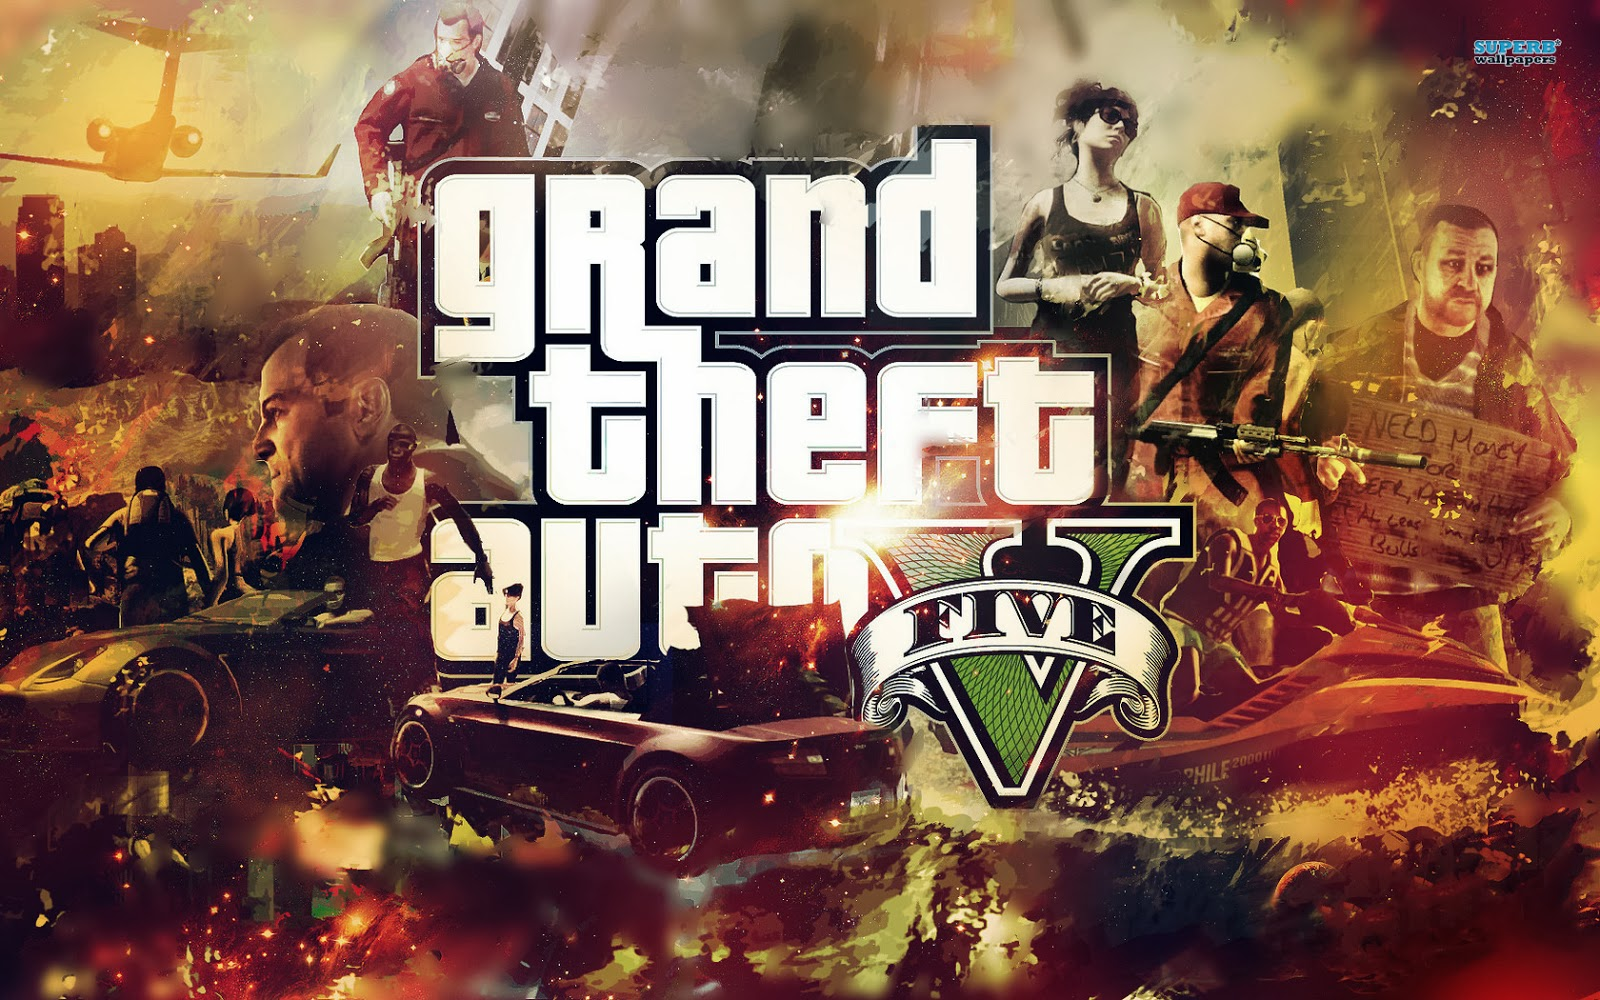 Gta v all character wallpaper game pictures and reviews - Gta v wallpaper ...